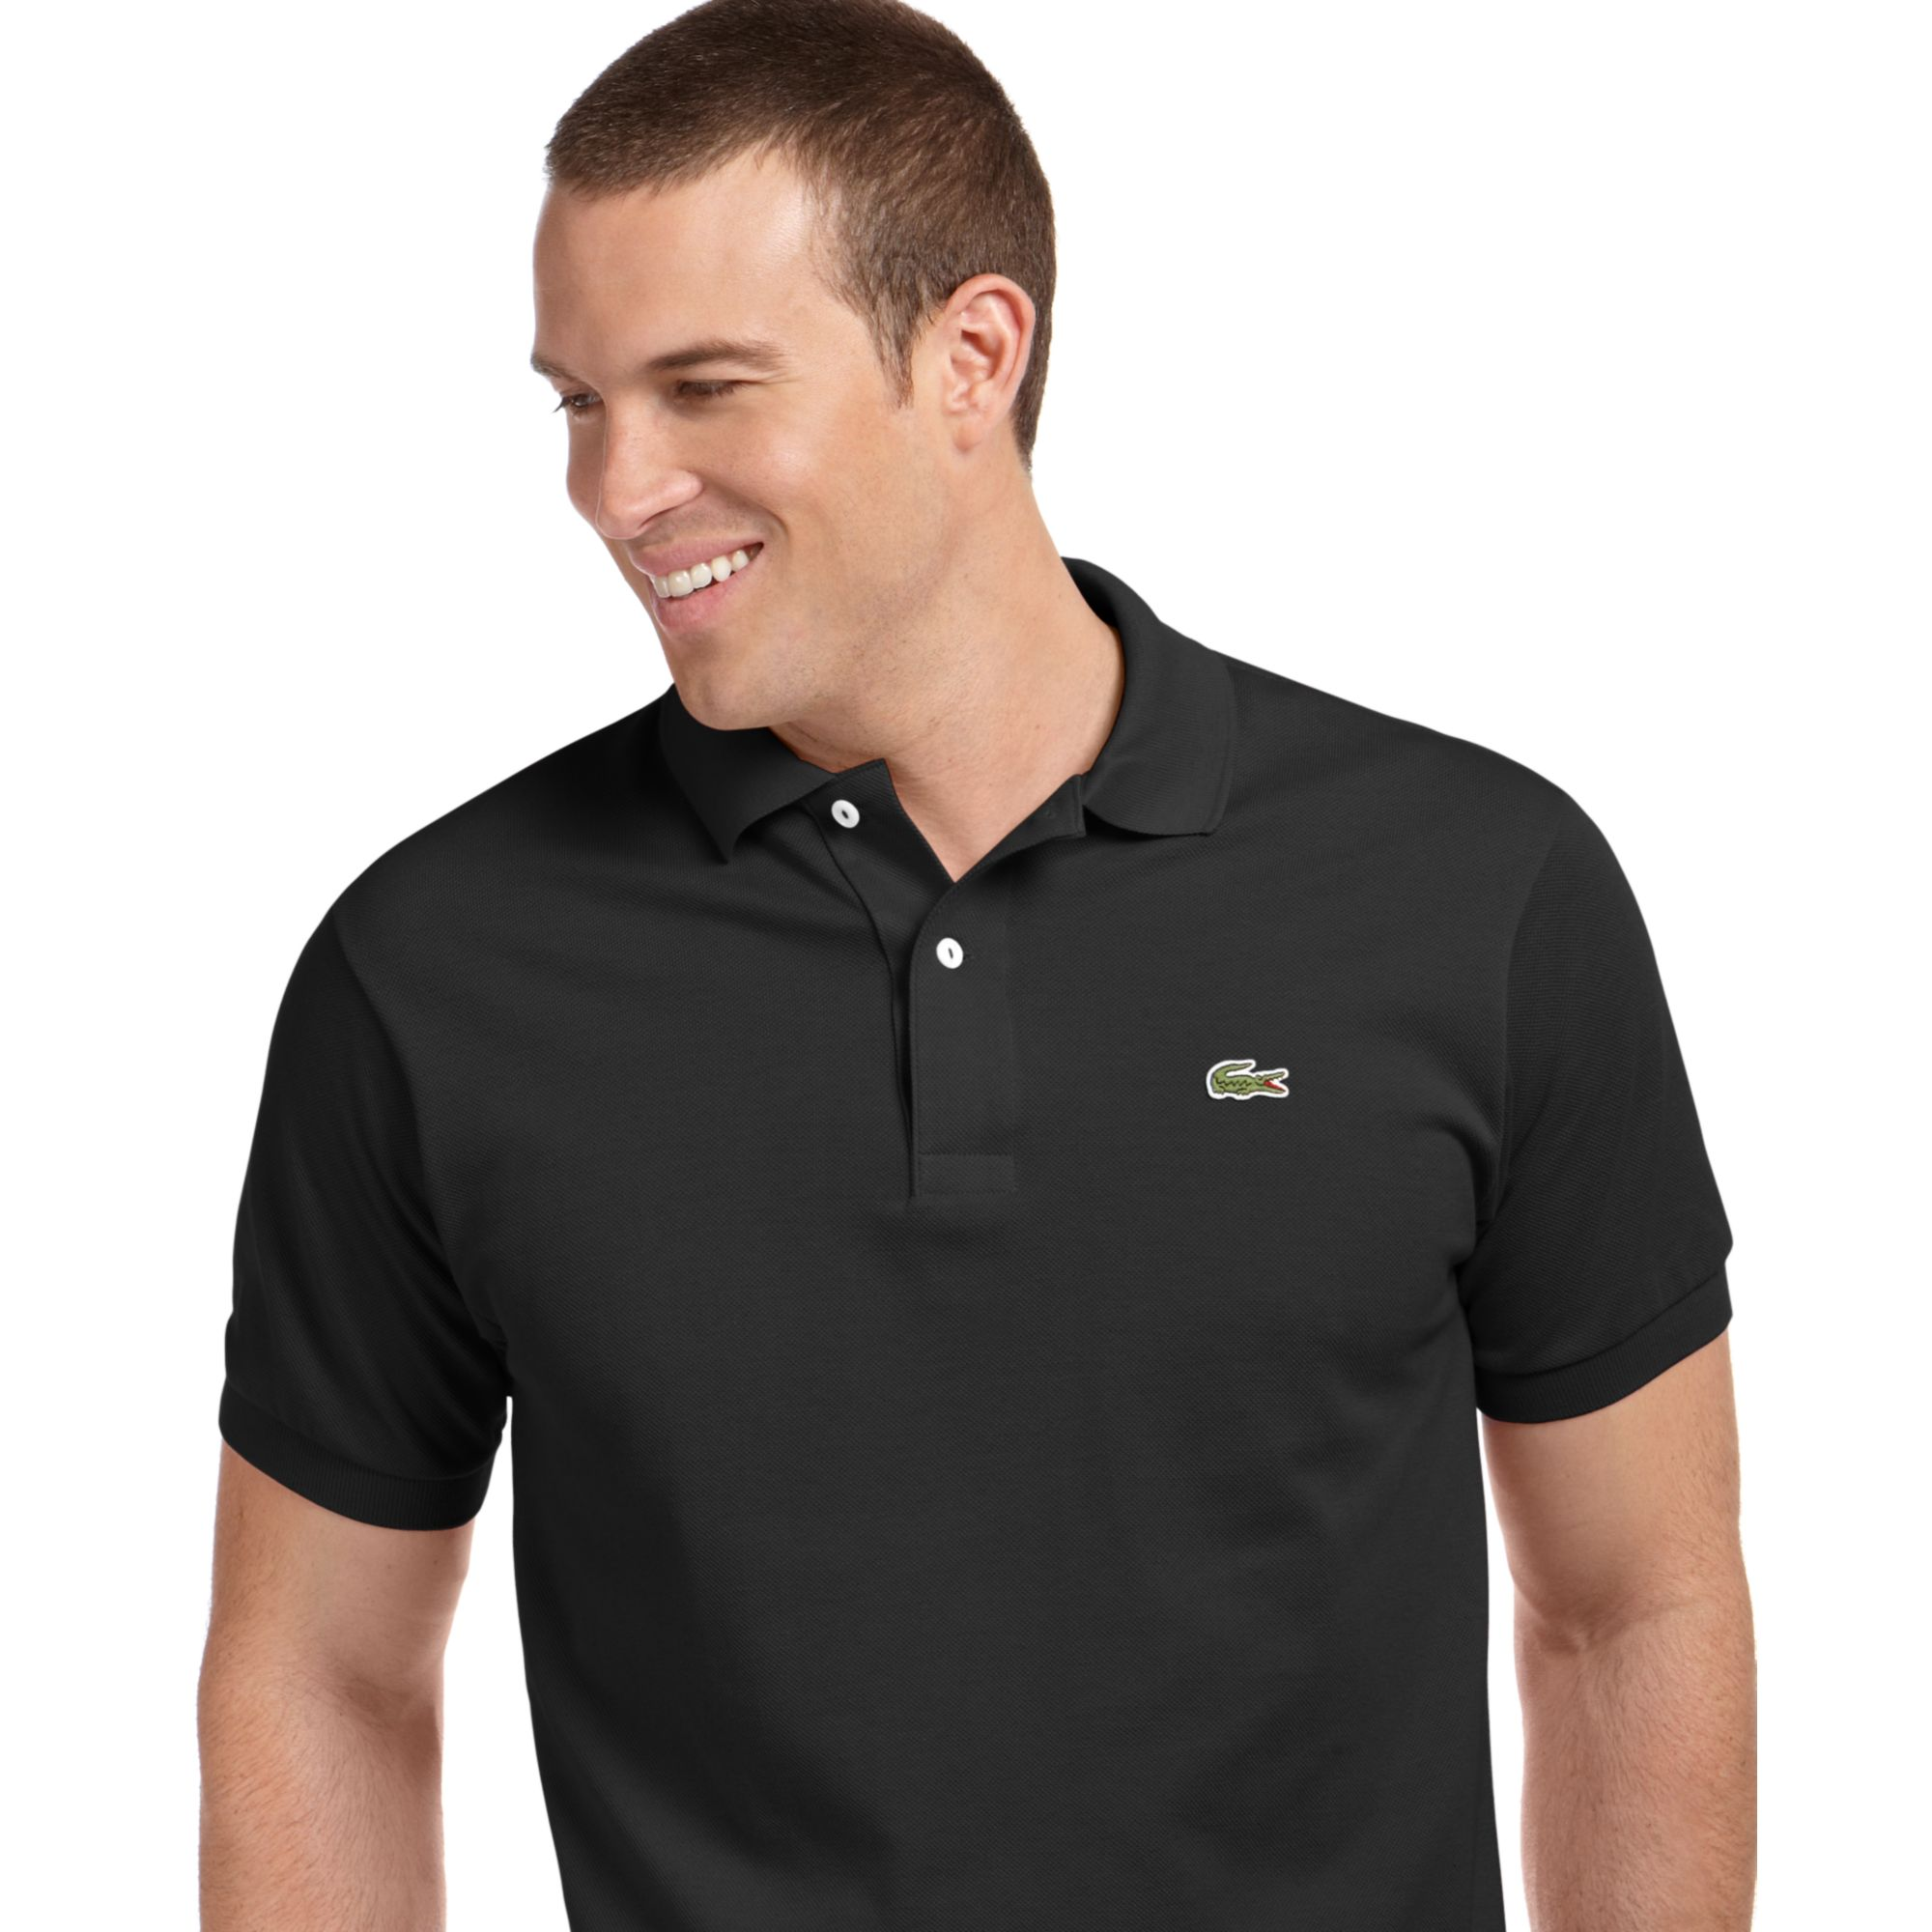 la coste black personals Black: hair : black: body : i don't have kids but i want to have them login to contact lacoste and fast growing online personals site.